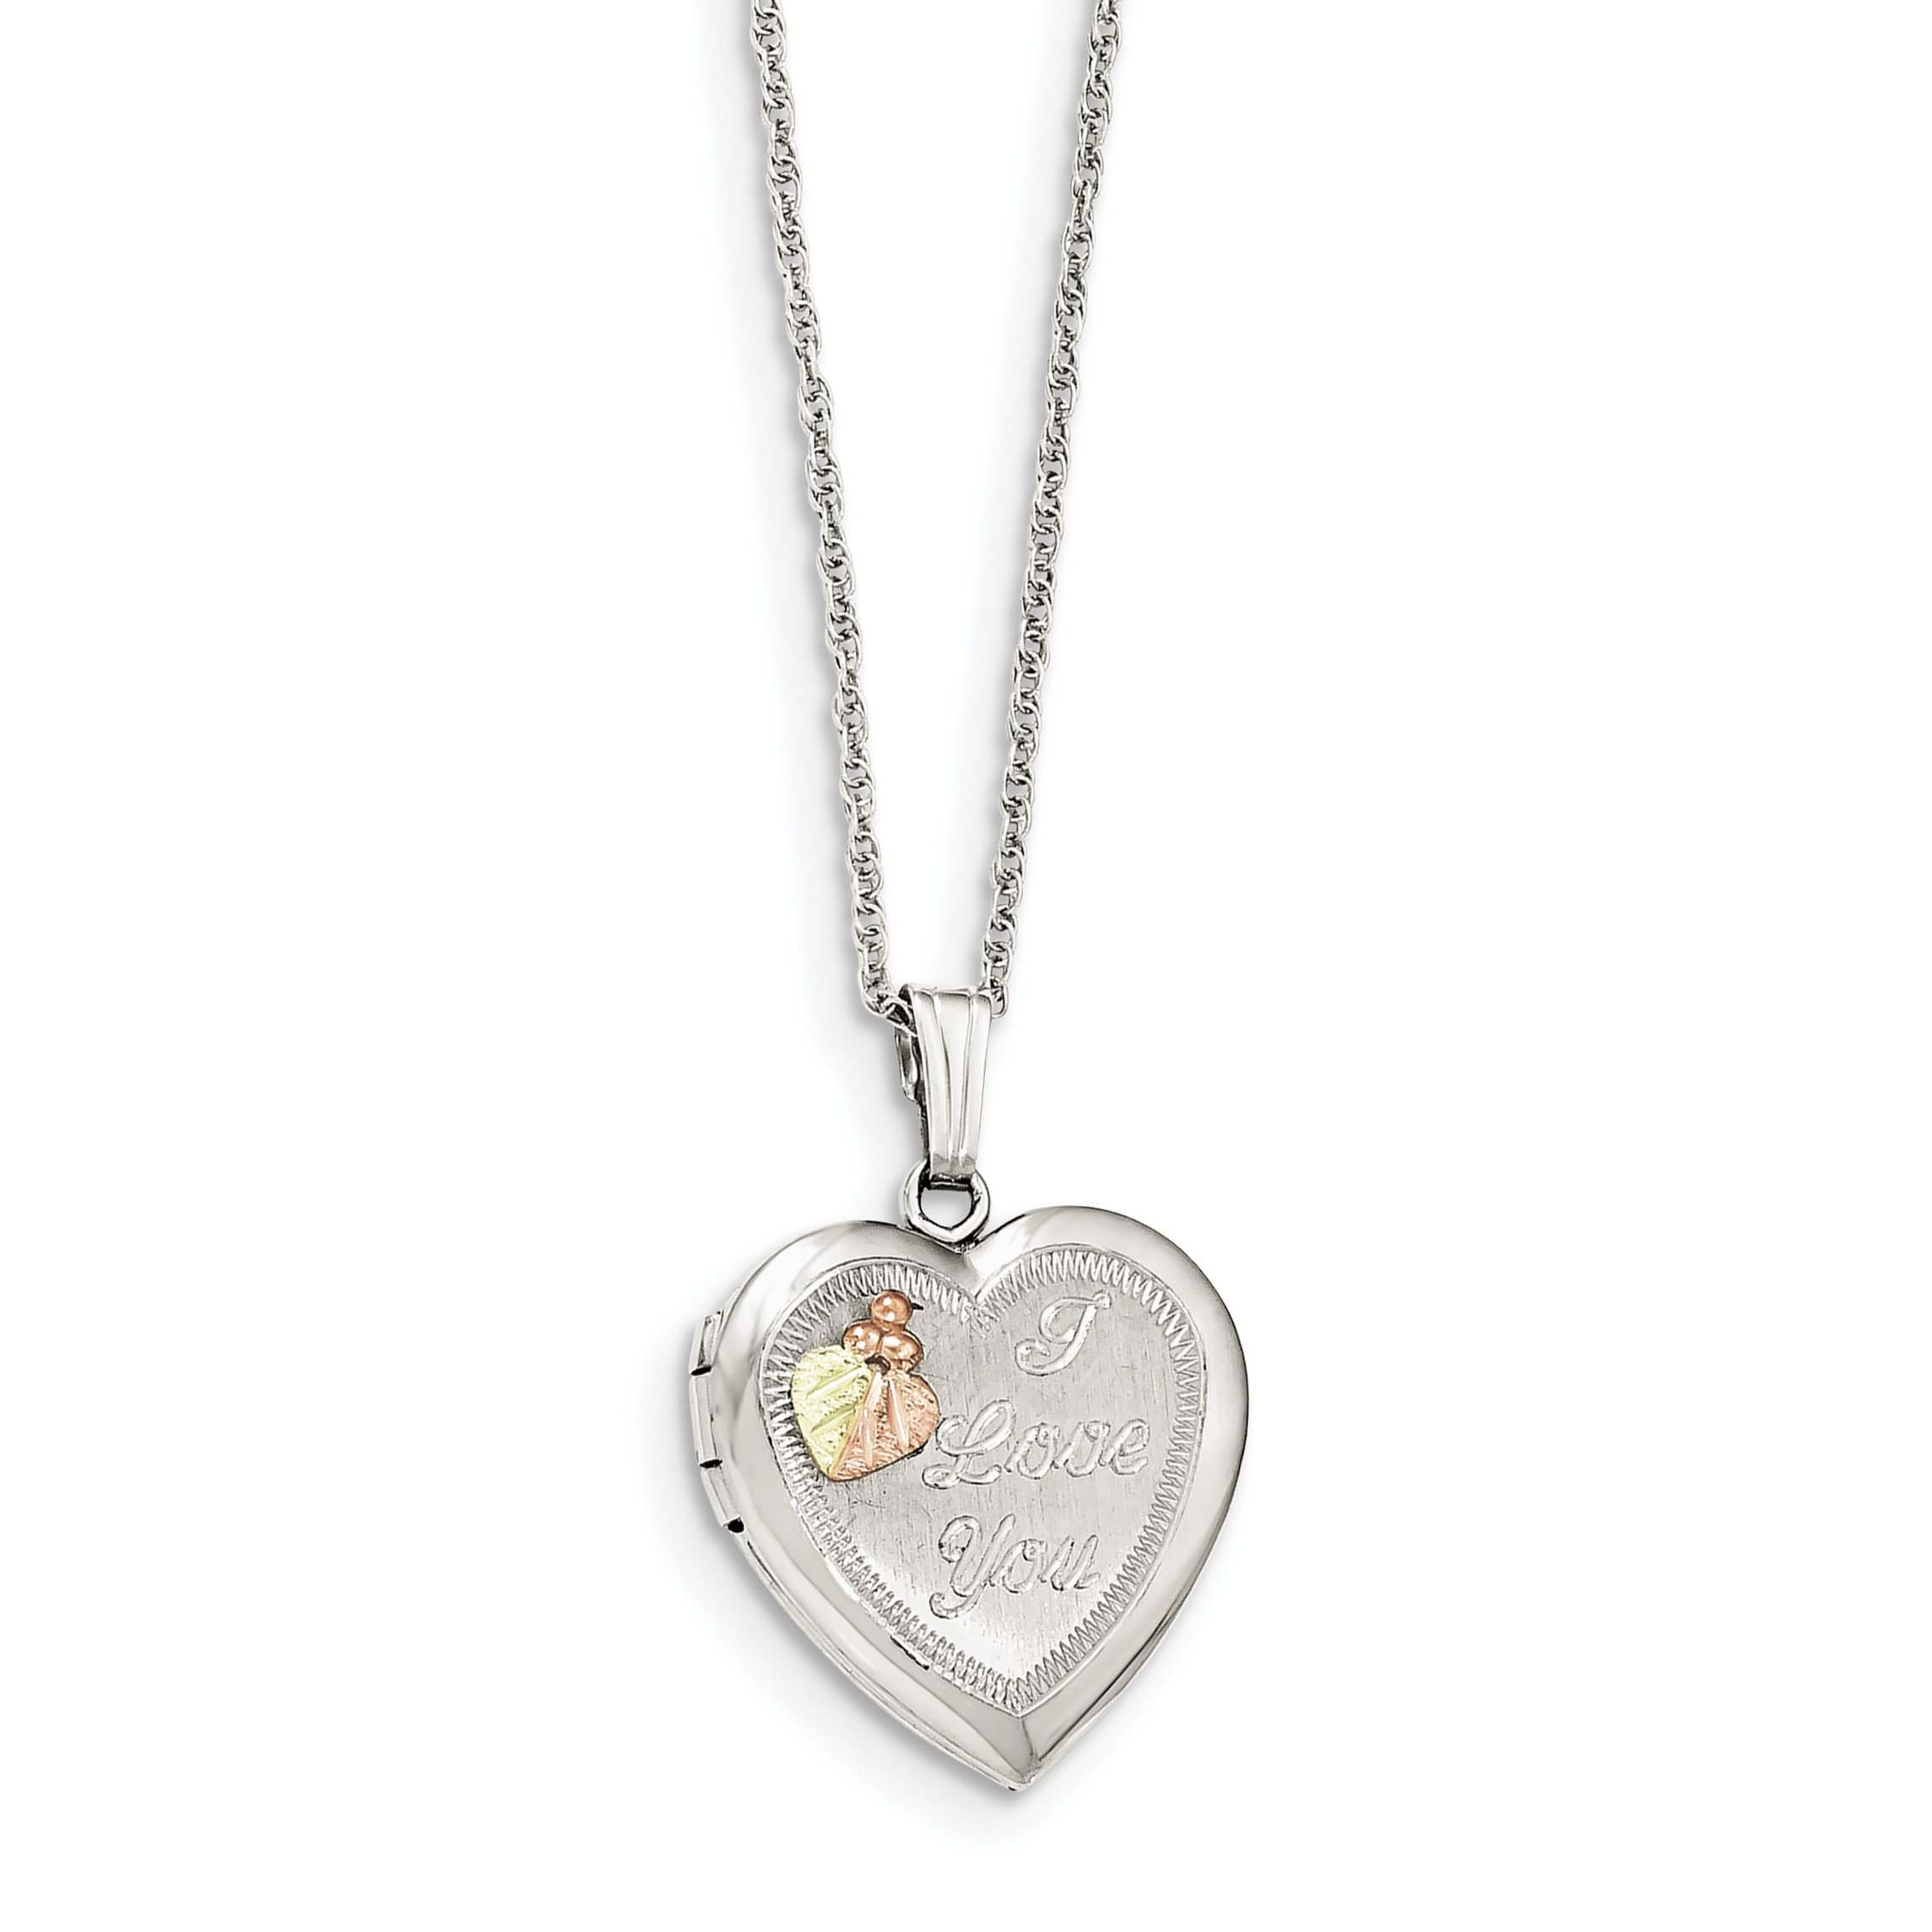 ICE CARATS 925 Sterling Silver 10k Heart I Love You Locket Chain Necklace S/love Fine Jewelry Gift Set For Women Heart